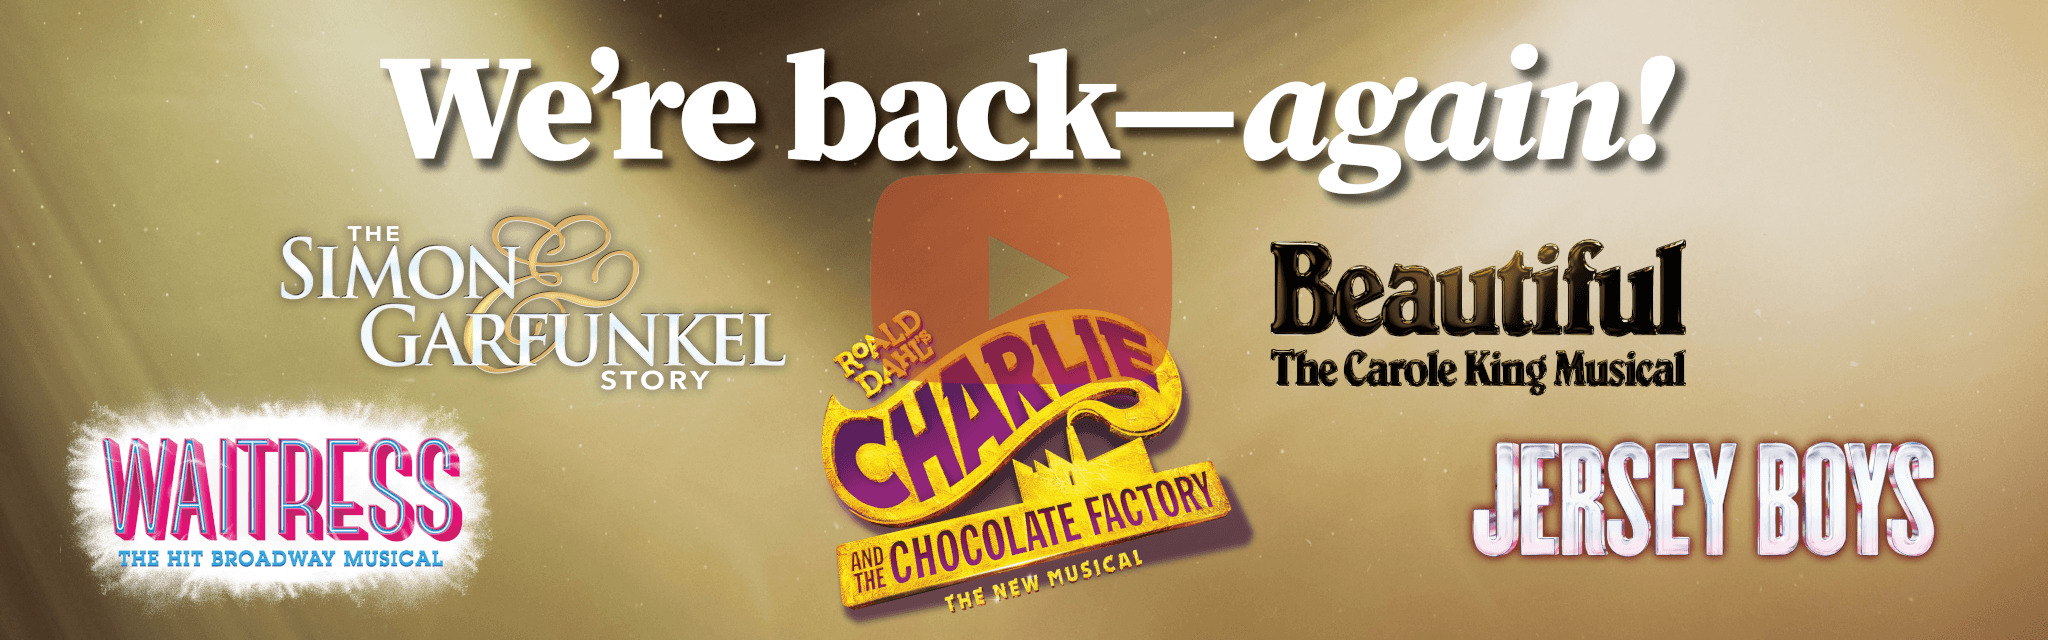 We're back - again! The Simon & Garfunkel Story, Waitress, Charlie and the Chocolate Factory, Jersey Boys, Beautiful: The Carol King Musical